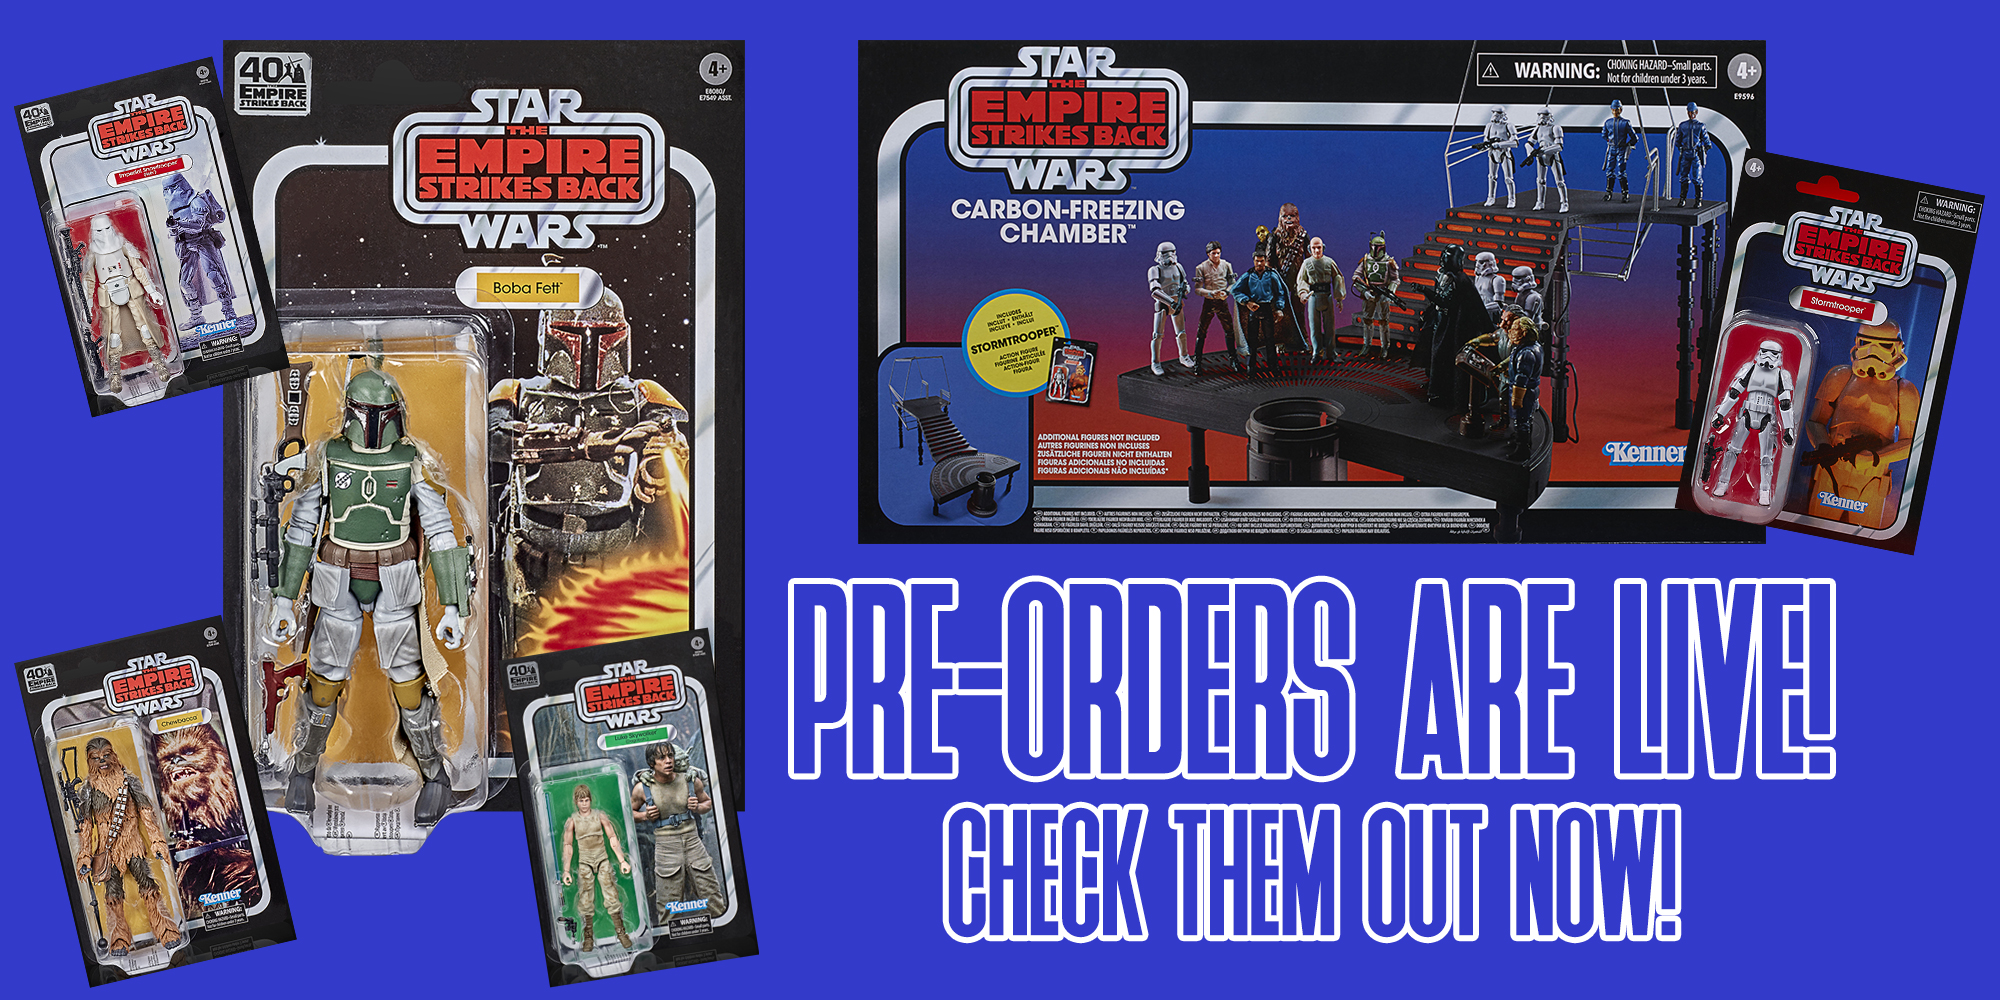 Pre-Order New Star Wars Figures At Entertainment Earth!